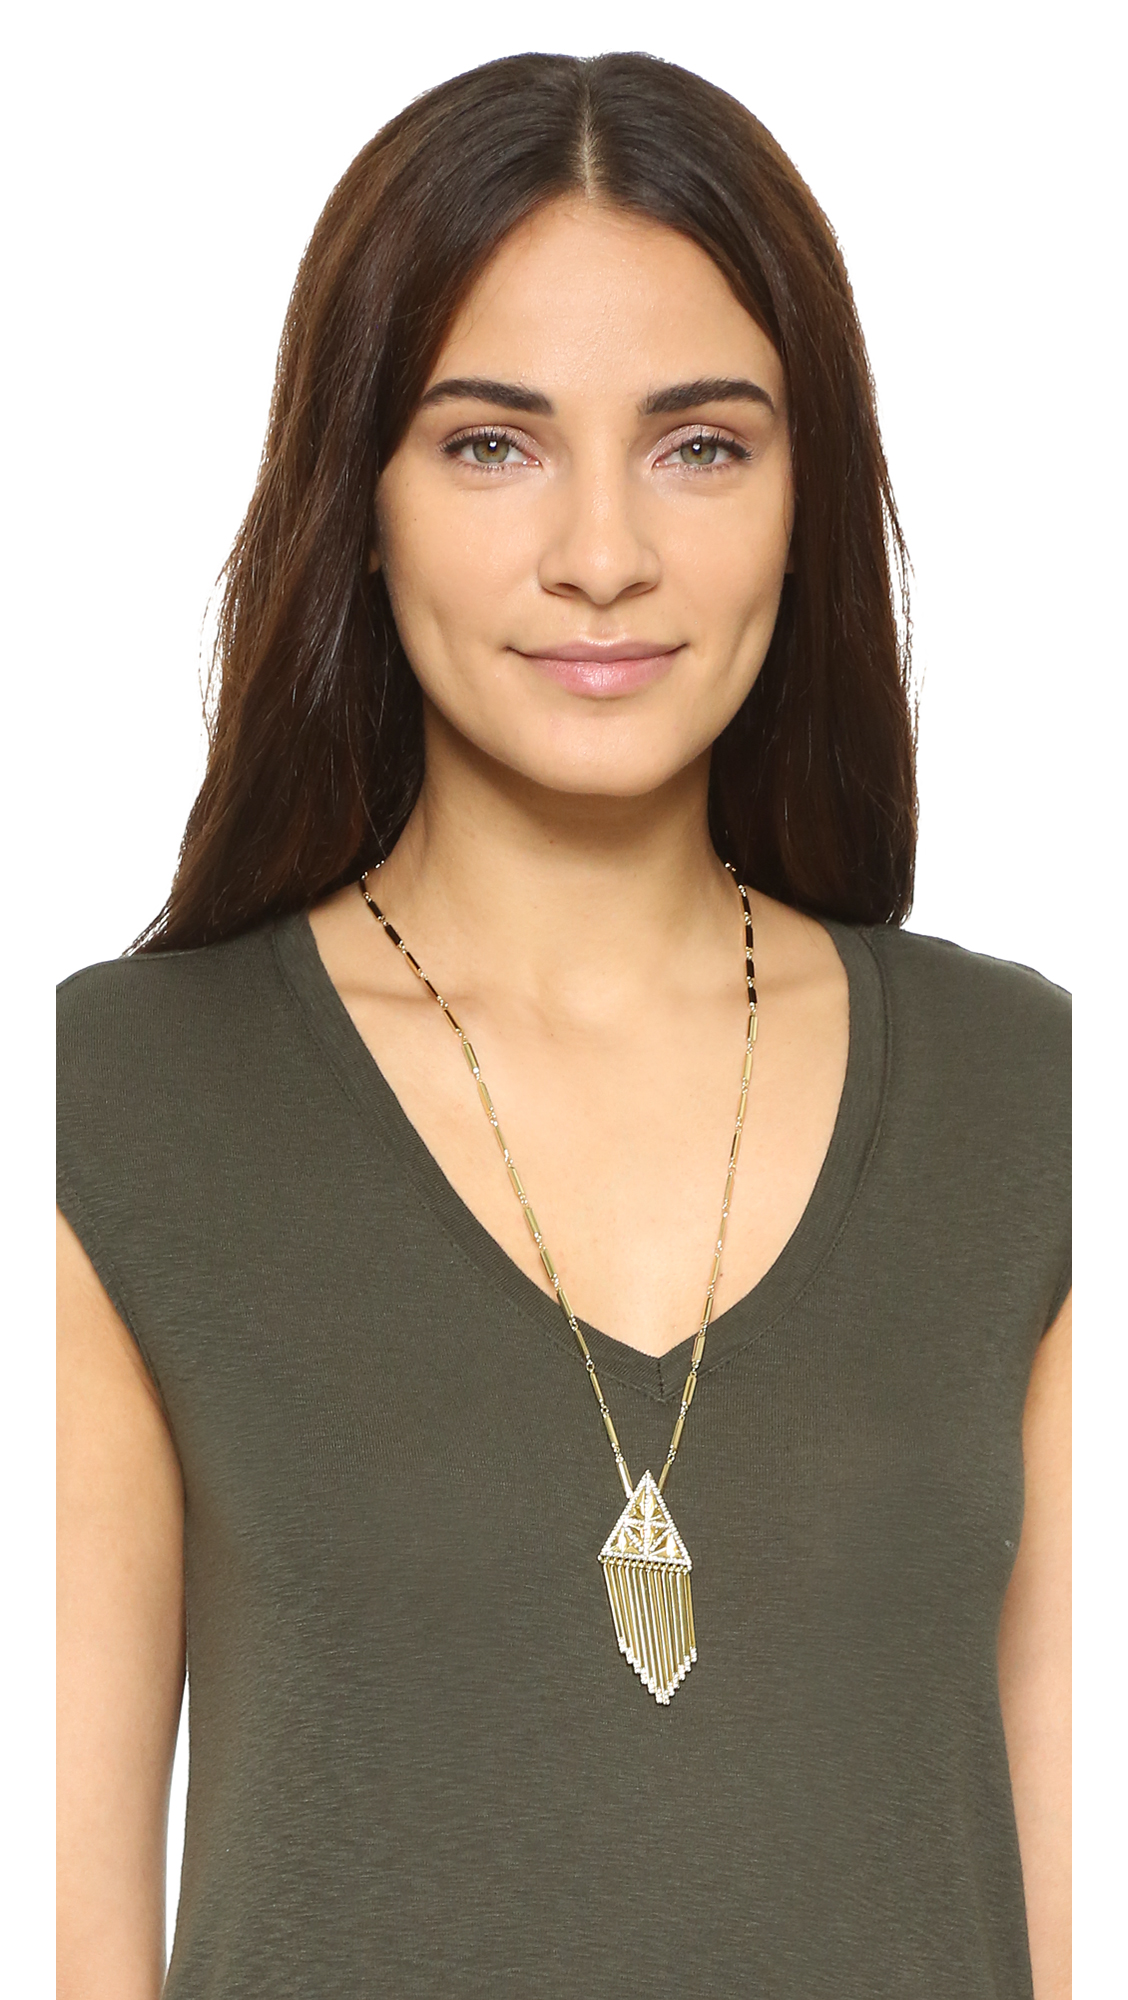 House of harlow 1960 golden hour fringe pendant necklace shopbop mozeypictures Image collections